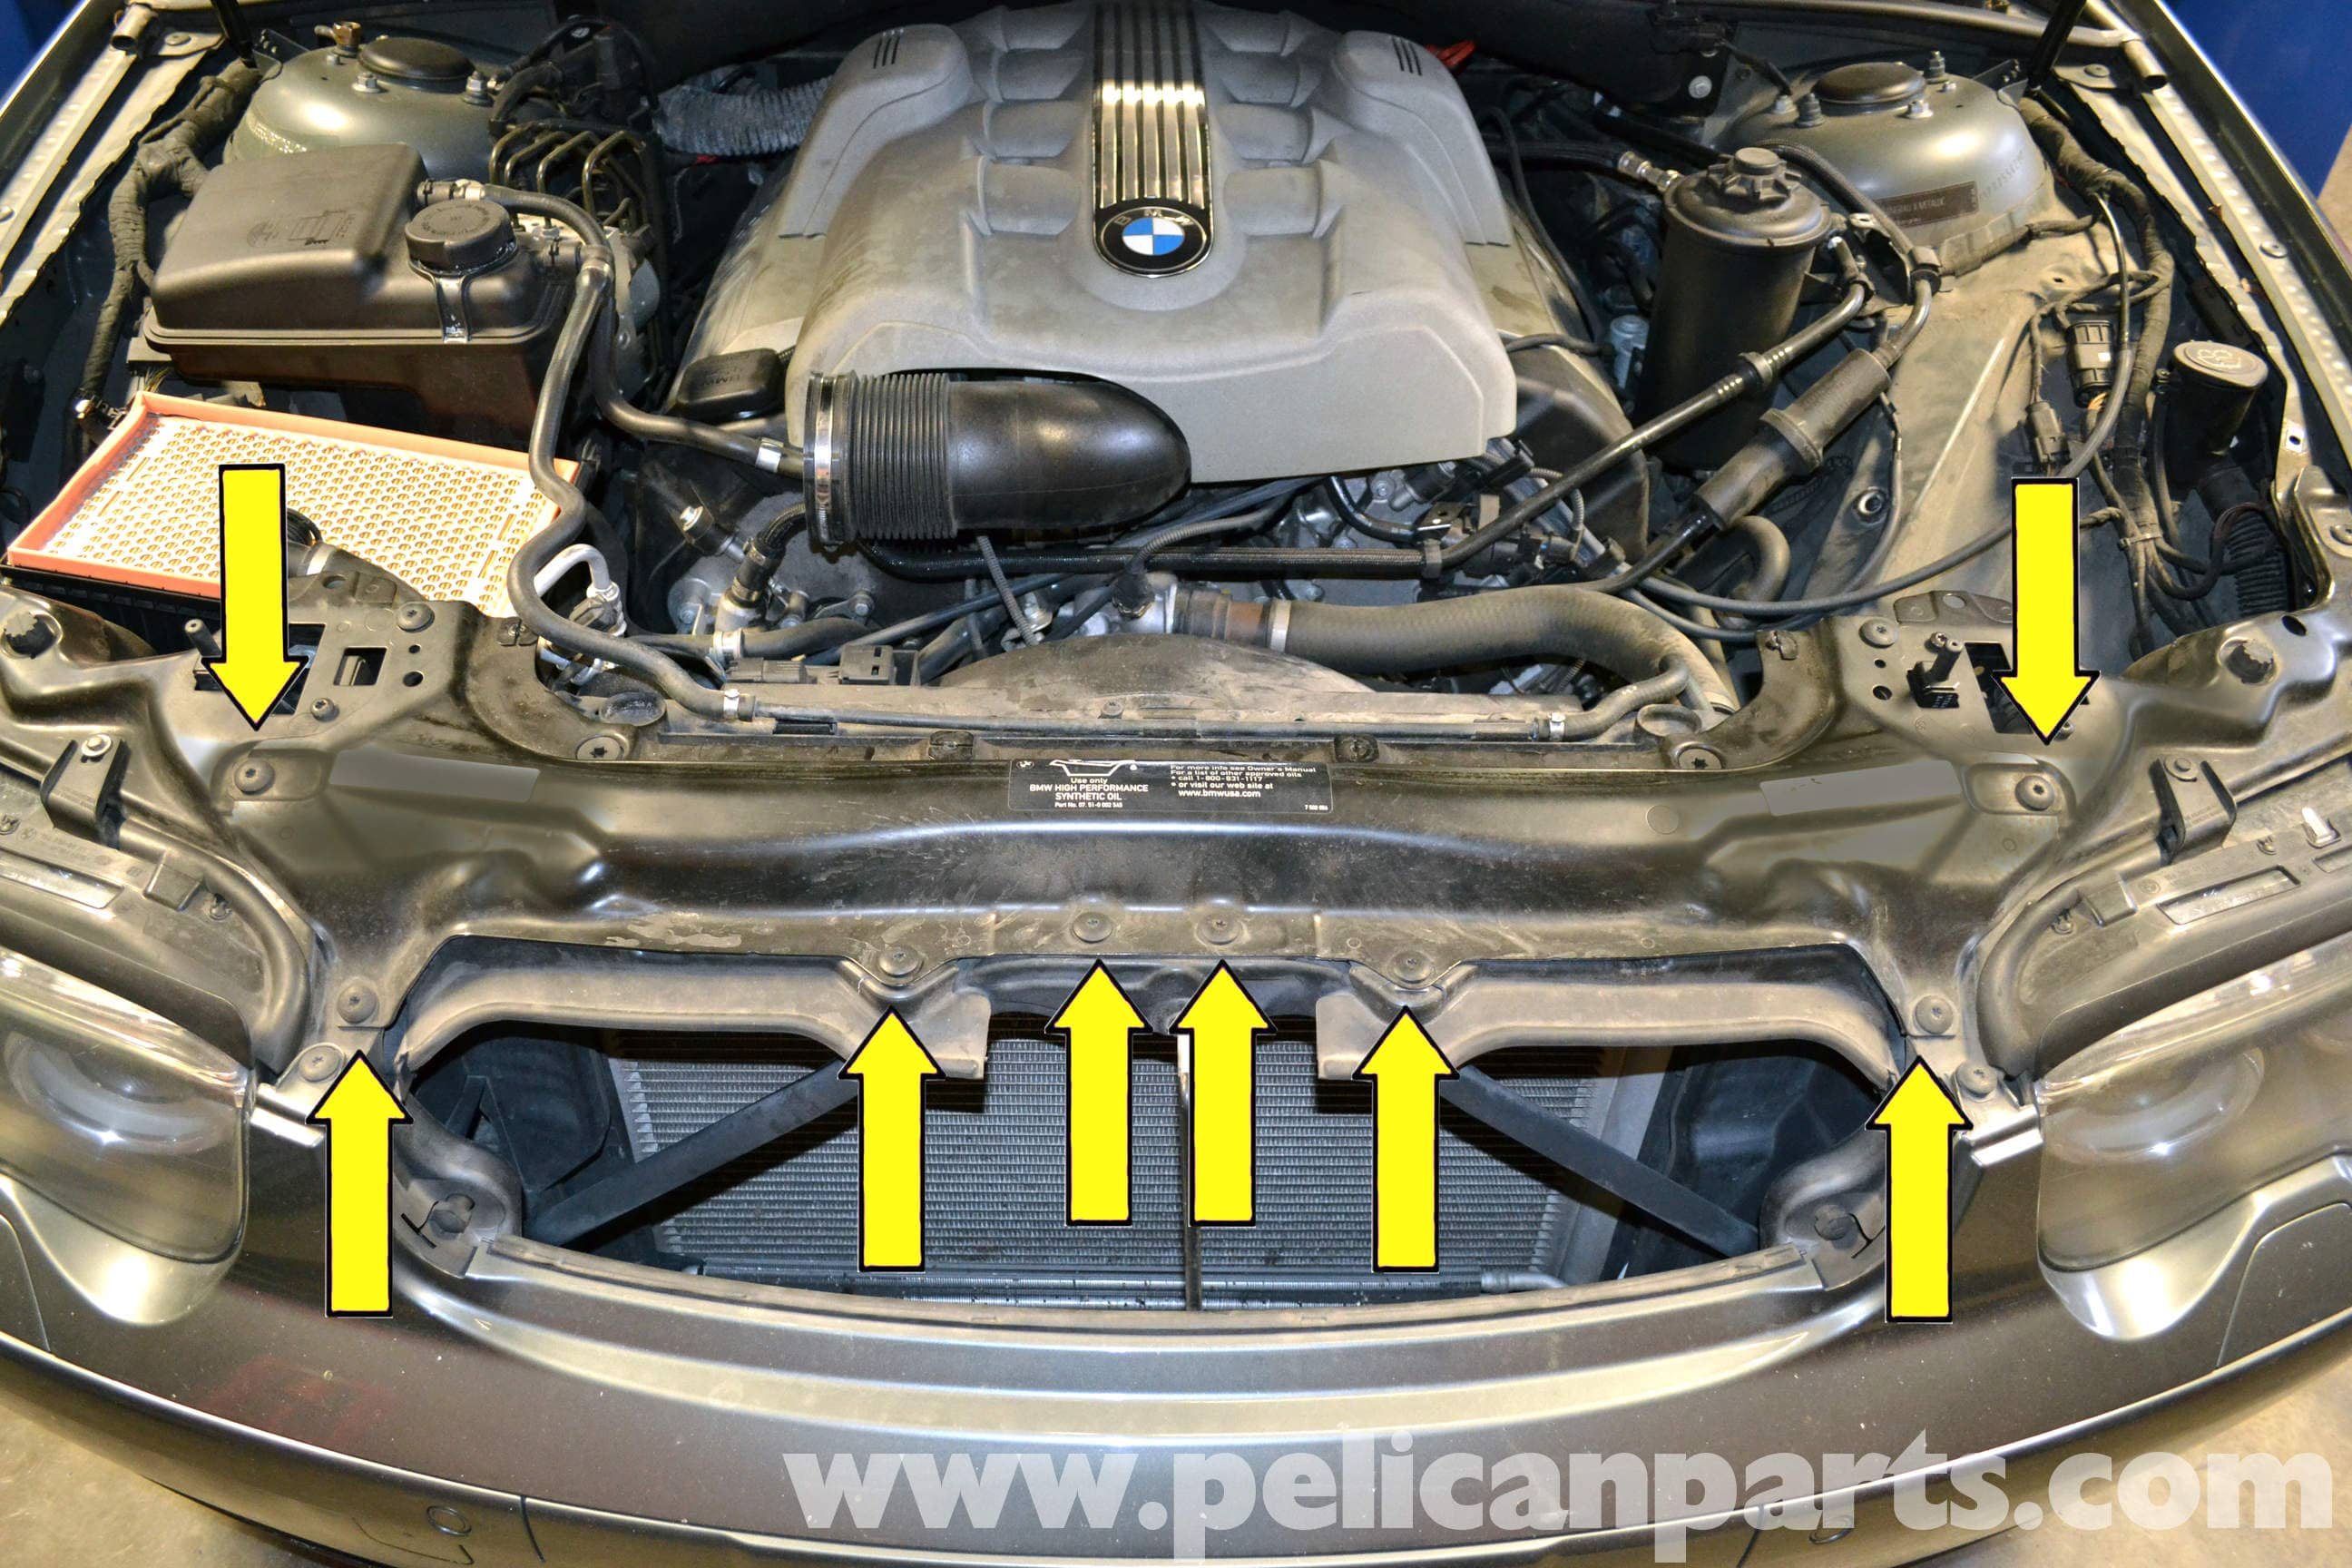 bmw n62 engine diagram bmw image wiring diagram bmw the infamous alternator bracket oil leak on the e65 bmw 7 on bmw n62 engine